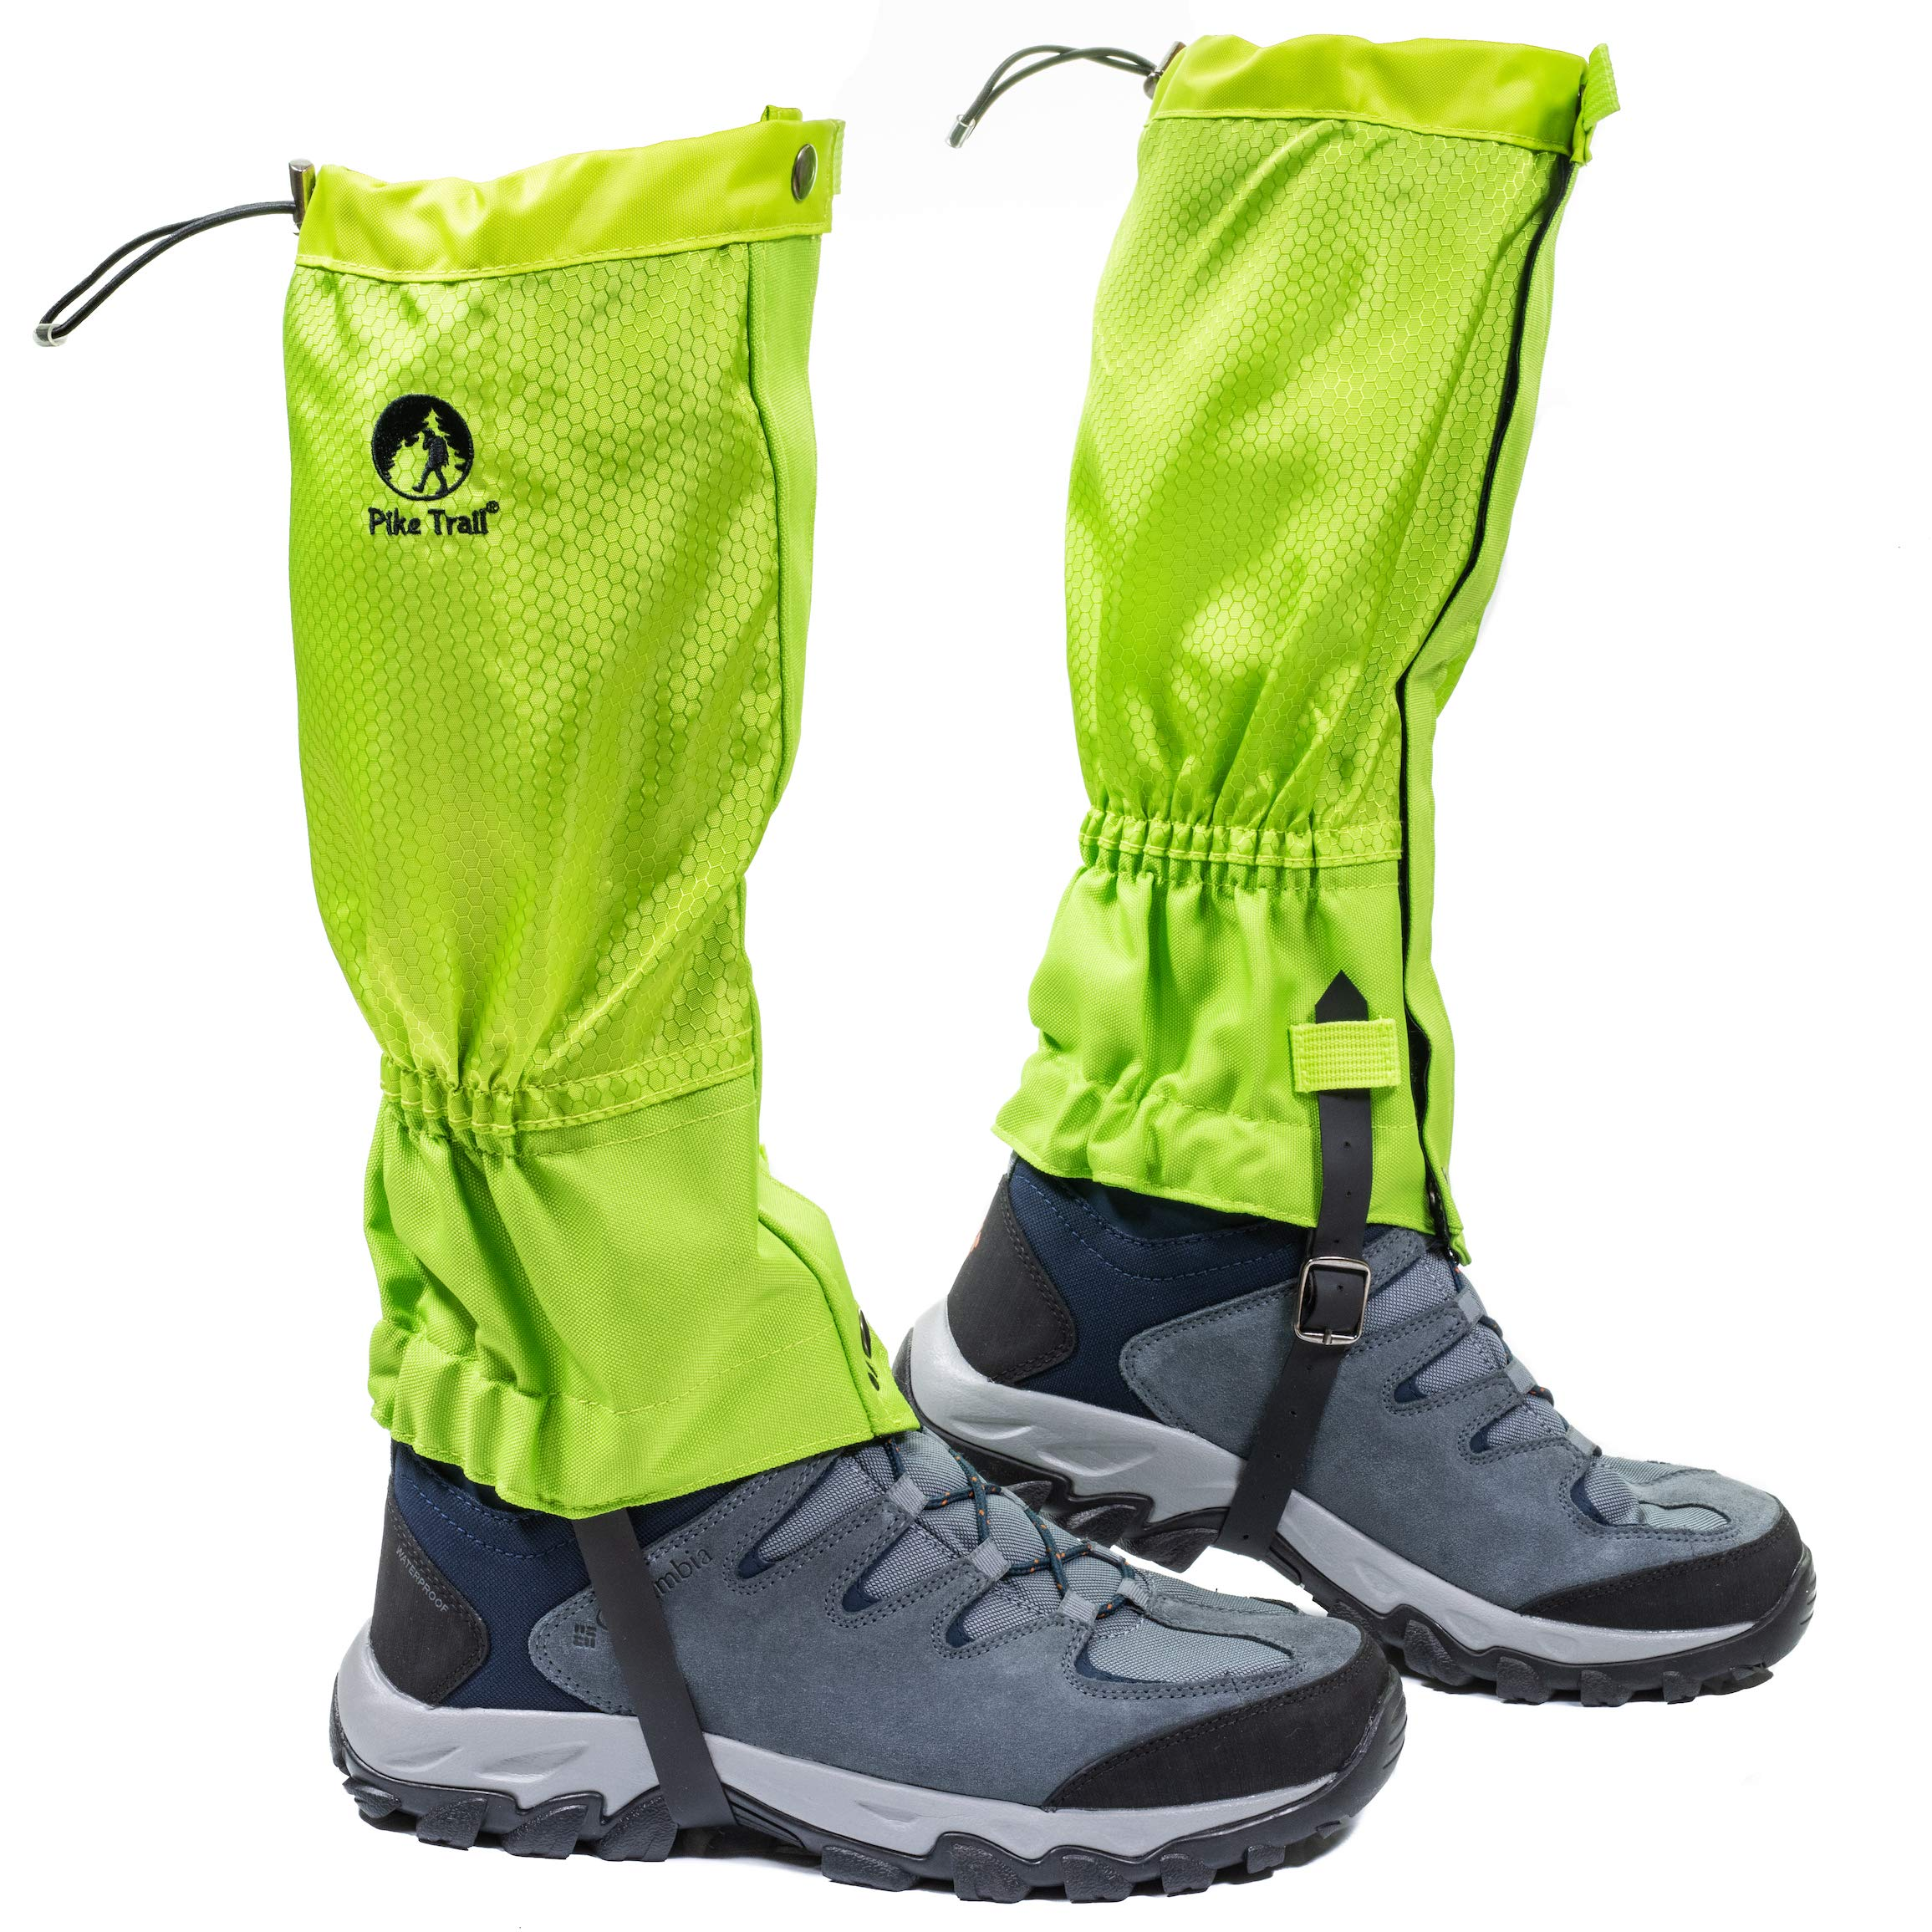 Pike Trail Leg Gaiters - Waterproof and Adjustable Snow Boot Gaiters for Hiking, Walking, Hunting, Mountain Climbing and Snowshoeing (Neon Green) by Pike Trail